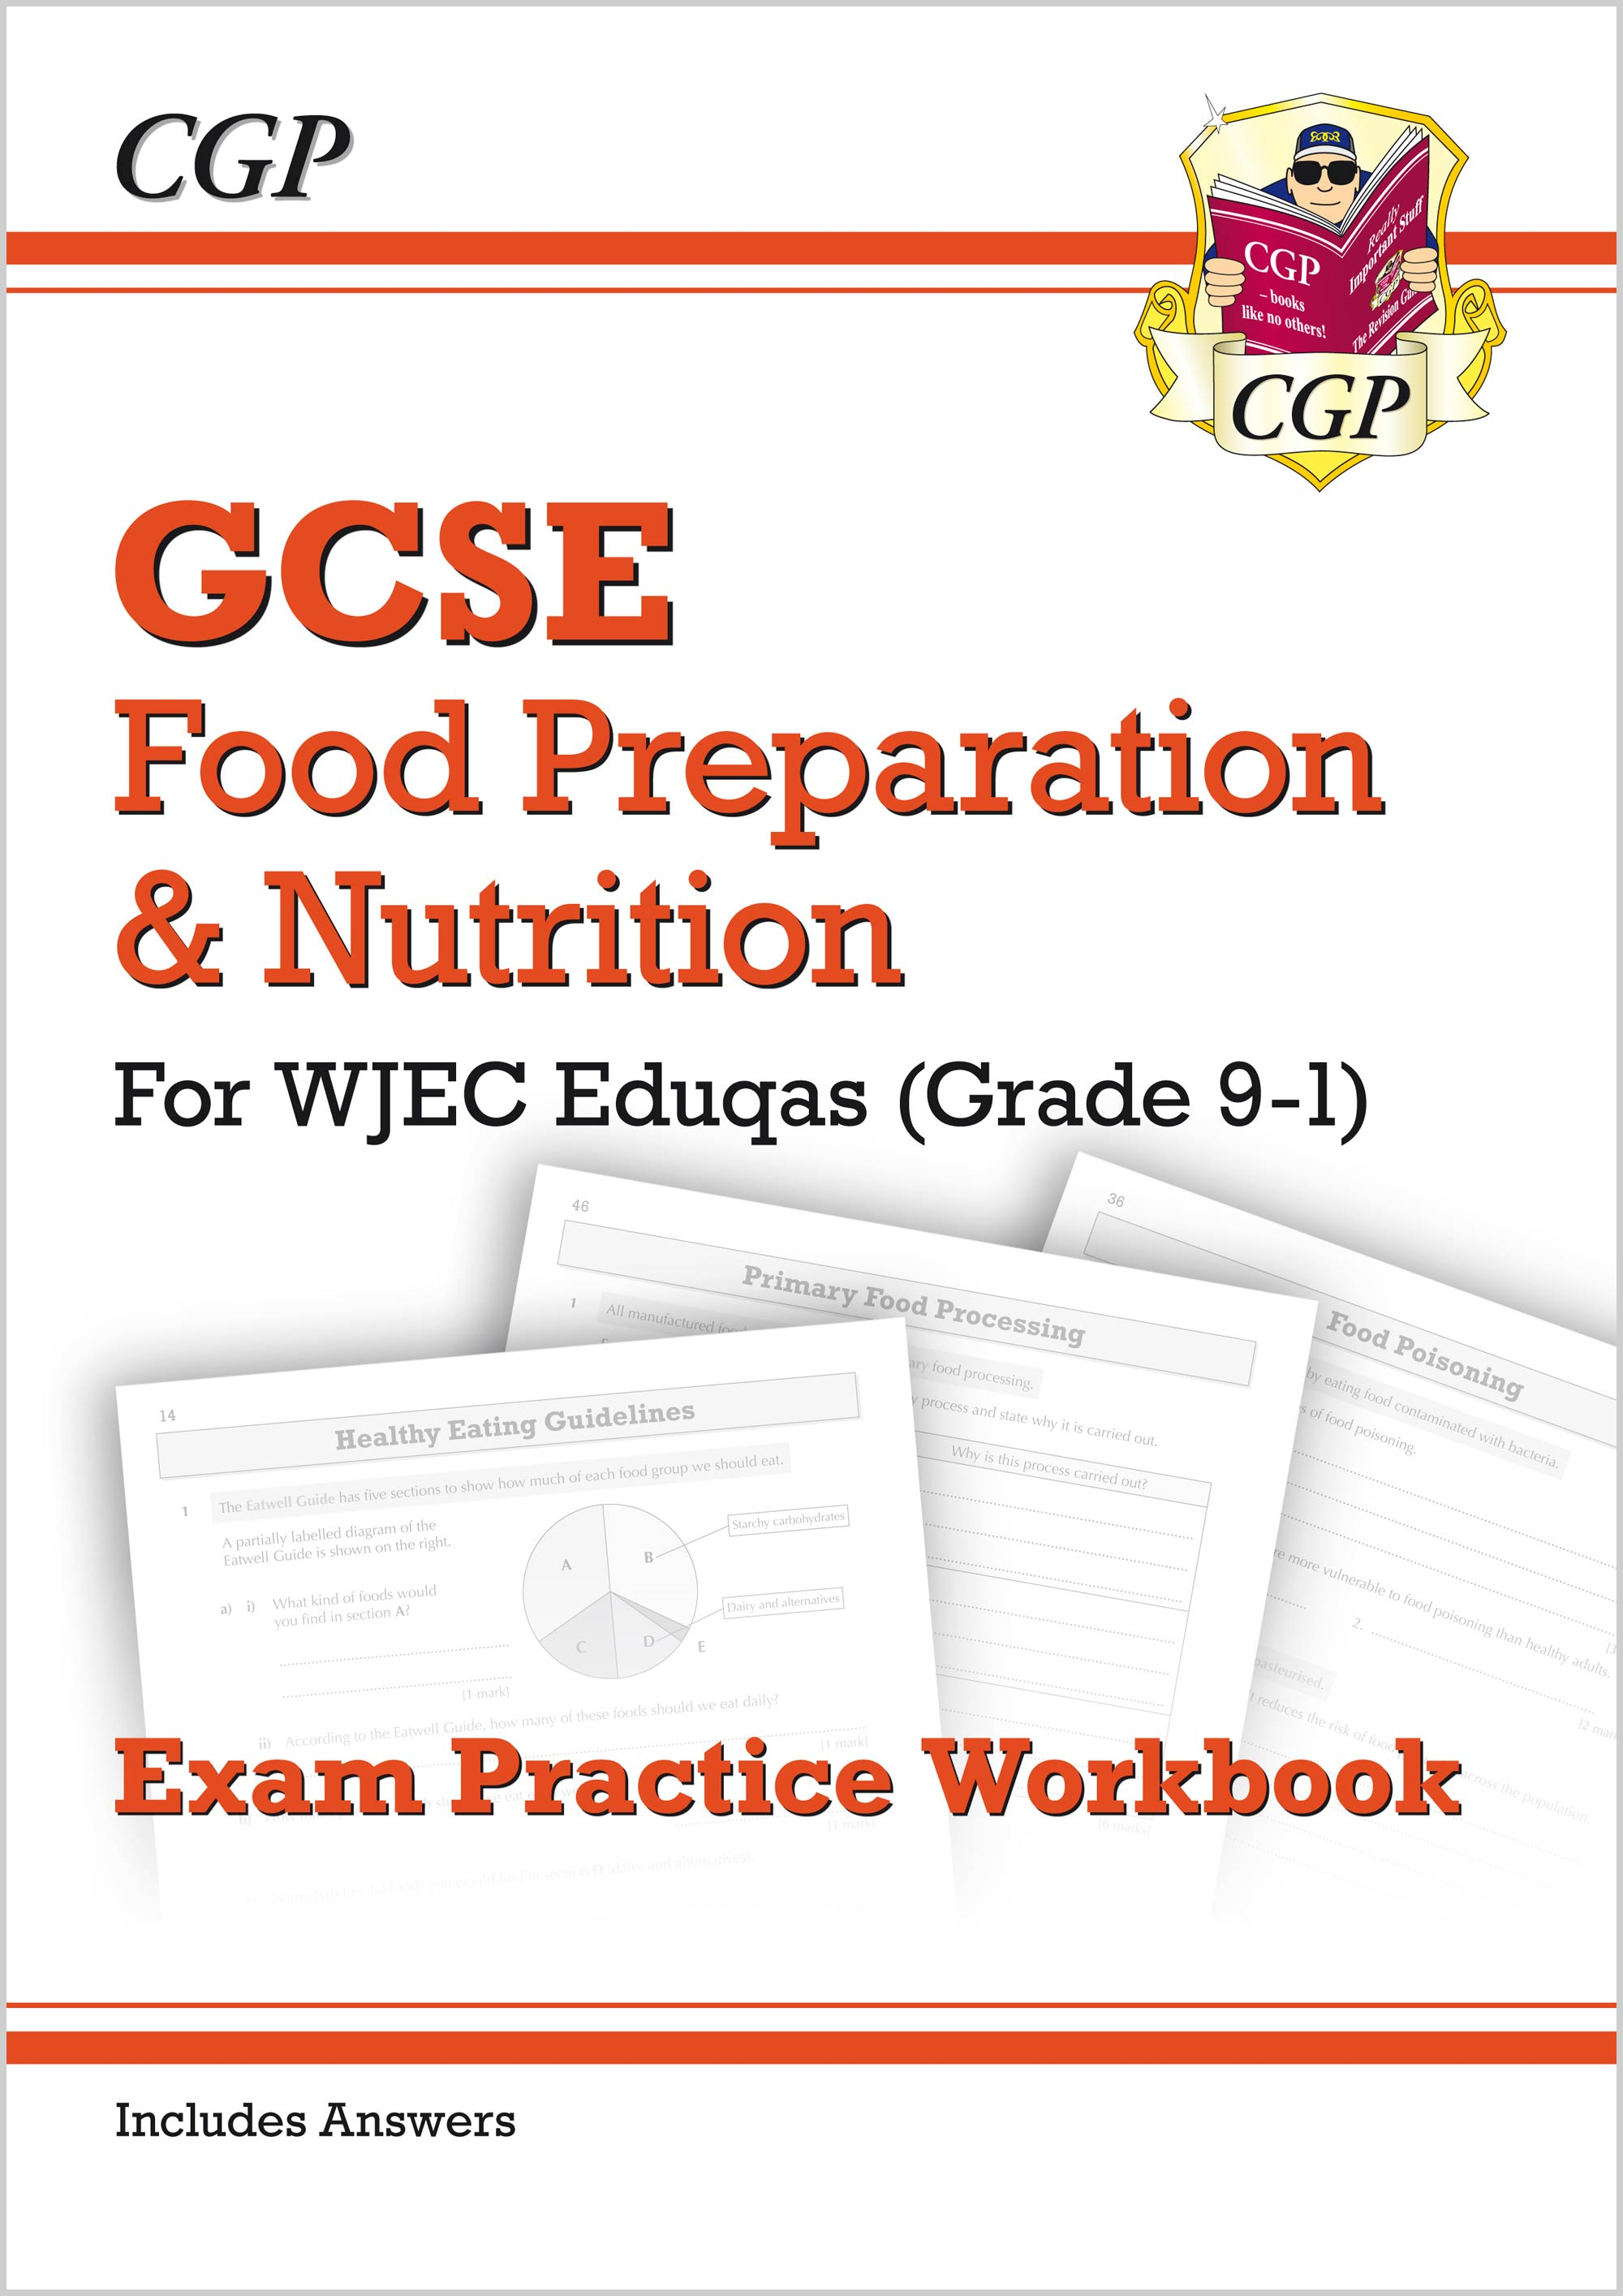 FNWQ41 - Grade 9-1 GCSE Food Preparation & Nutrition - WJEC Eduqas Exam Practice Workbook (incl. Ans